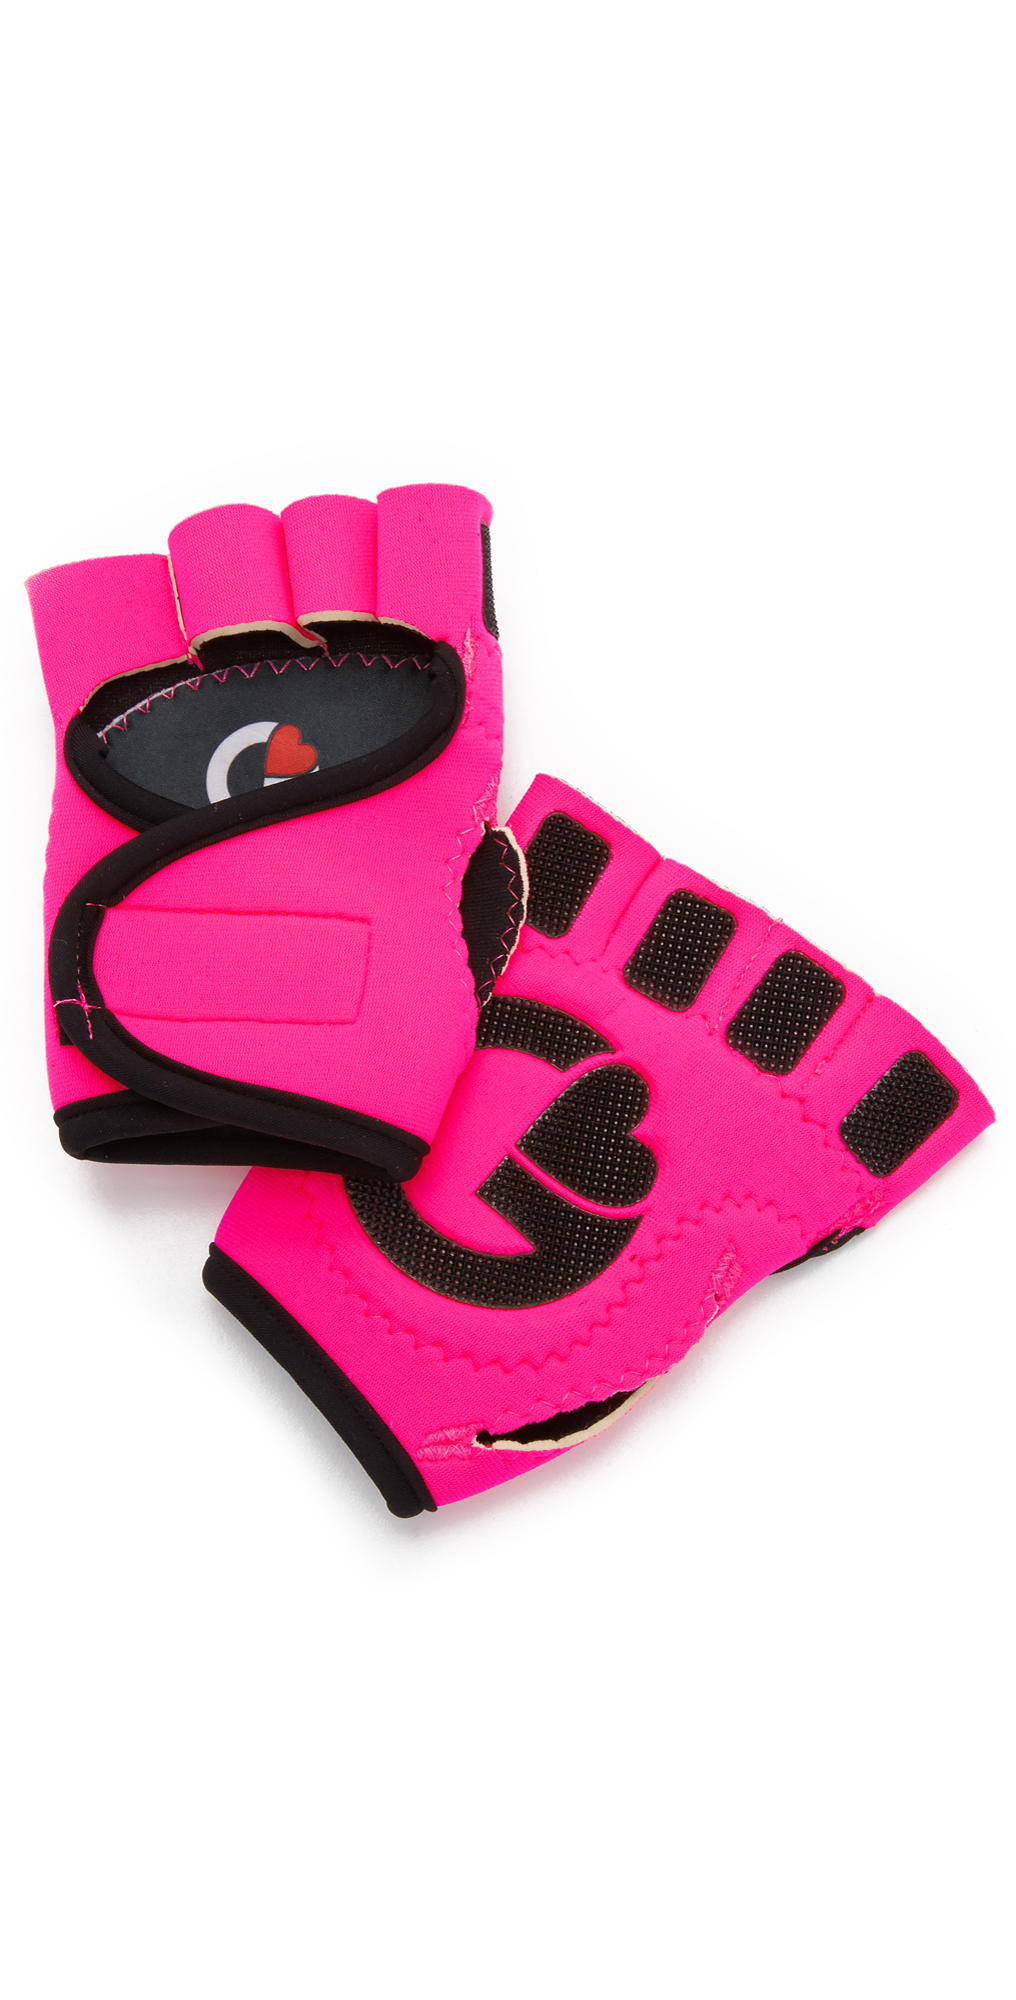 G-Loves Hot Pink with Black Workout Gloves